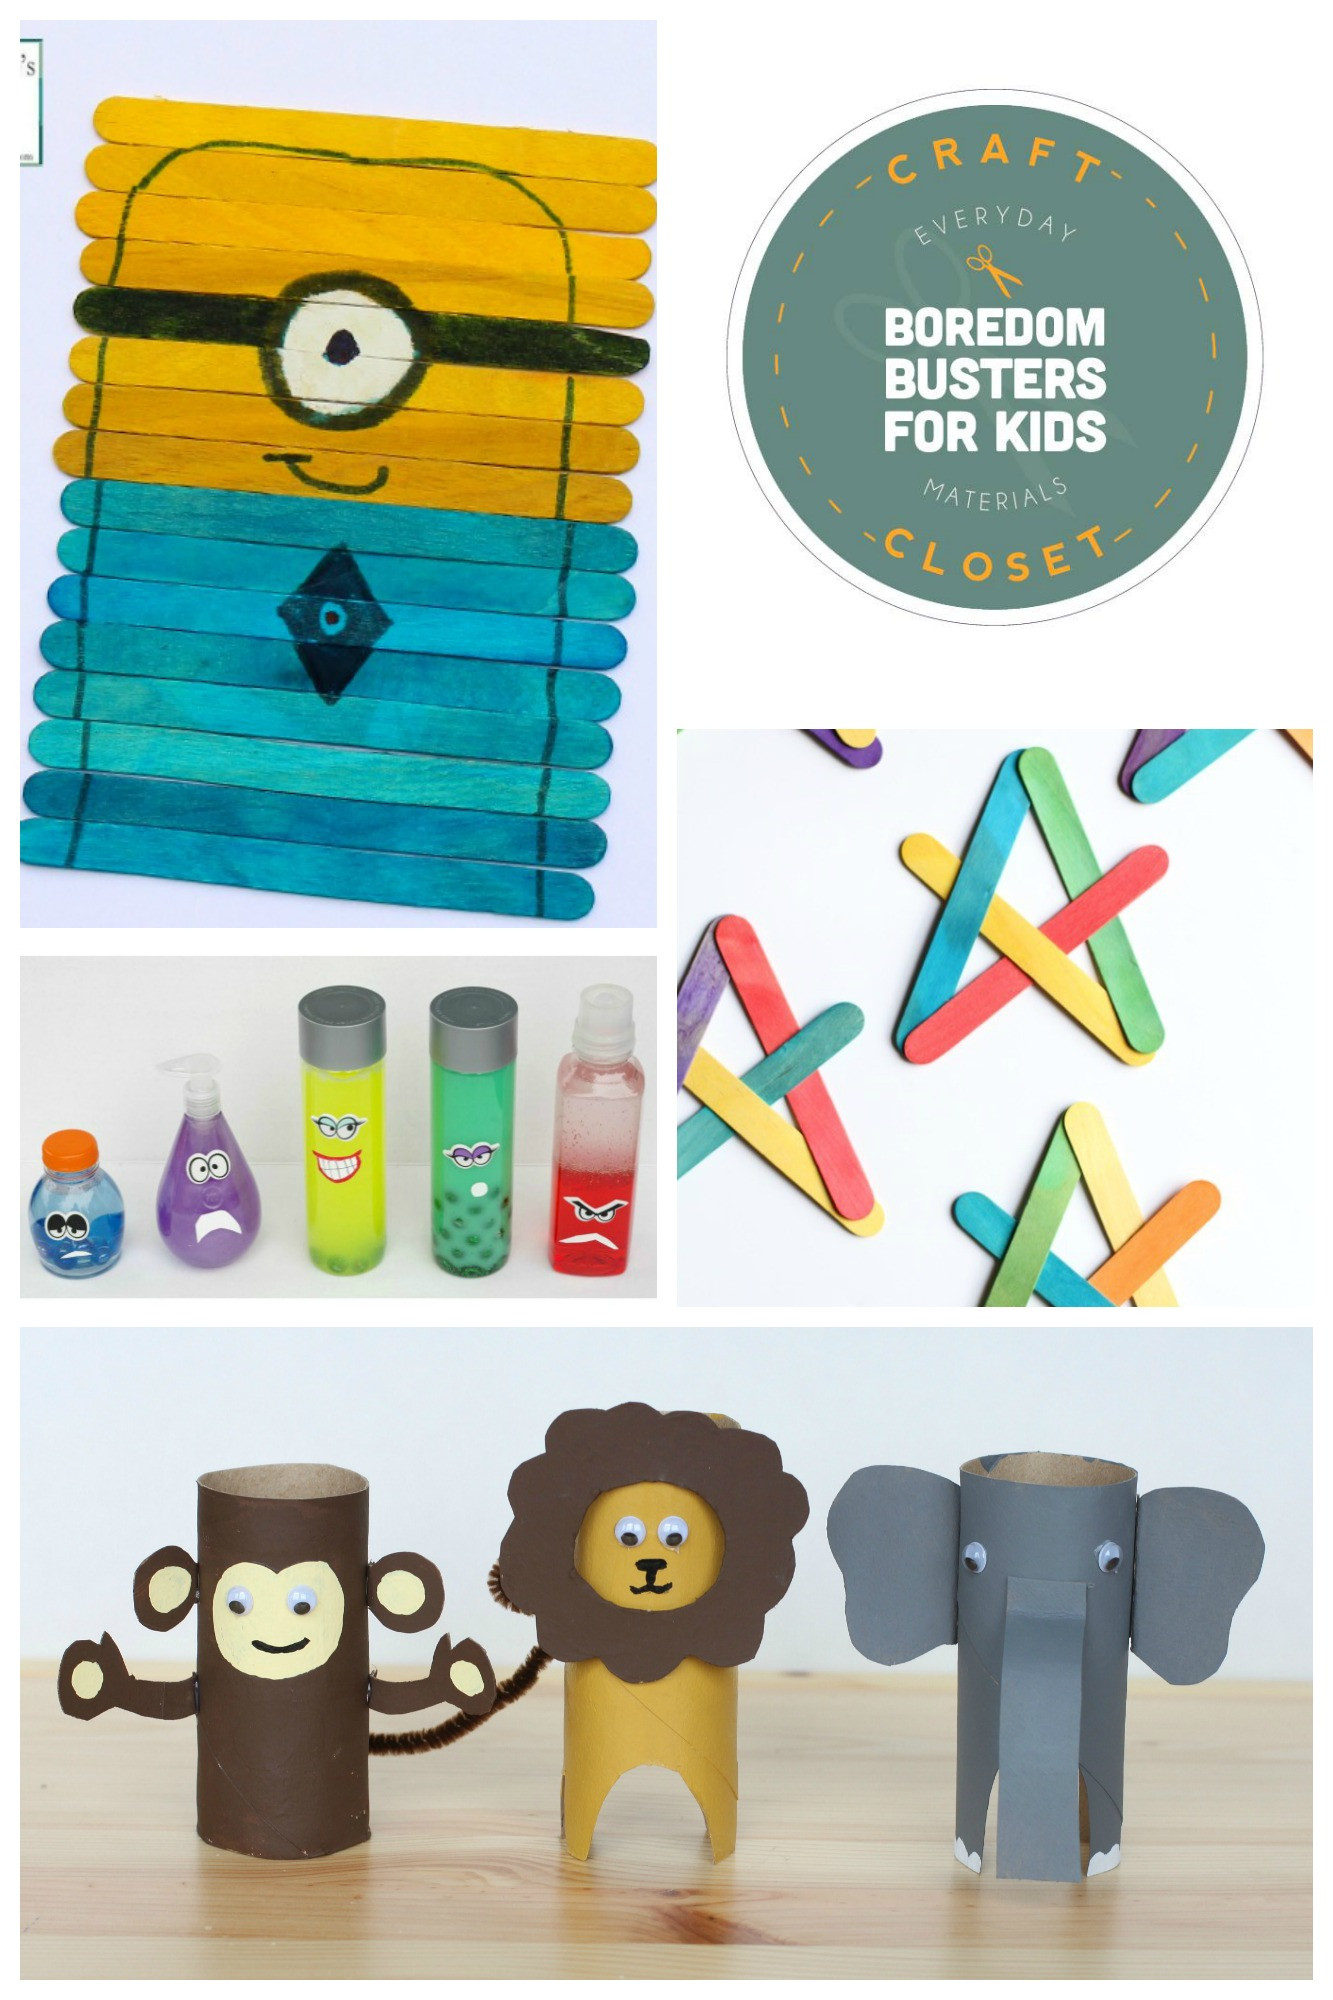 Best ideas about Crafts For Kids . Save or Pin 25 Crafts and Activities for Kids Using Everyday Now.